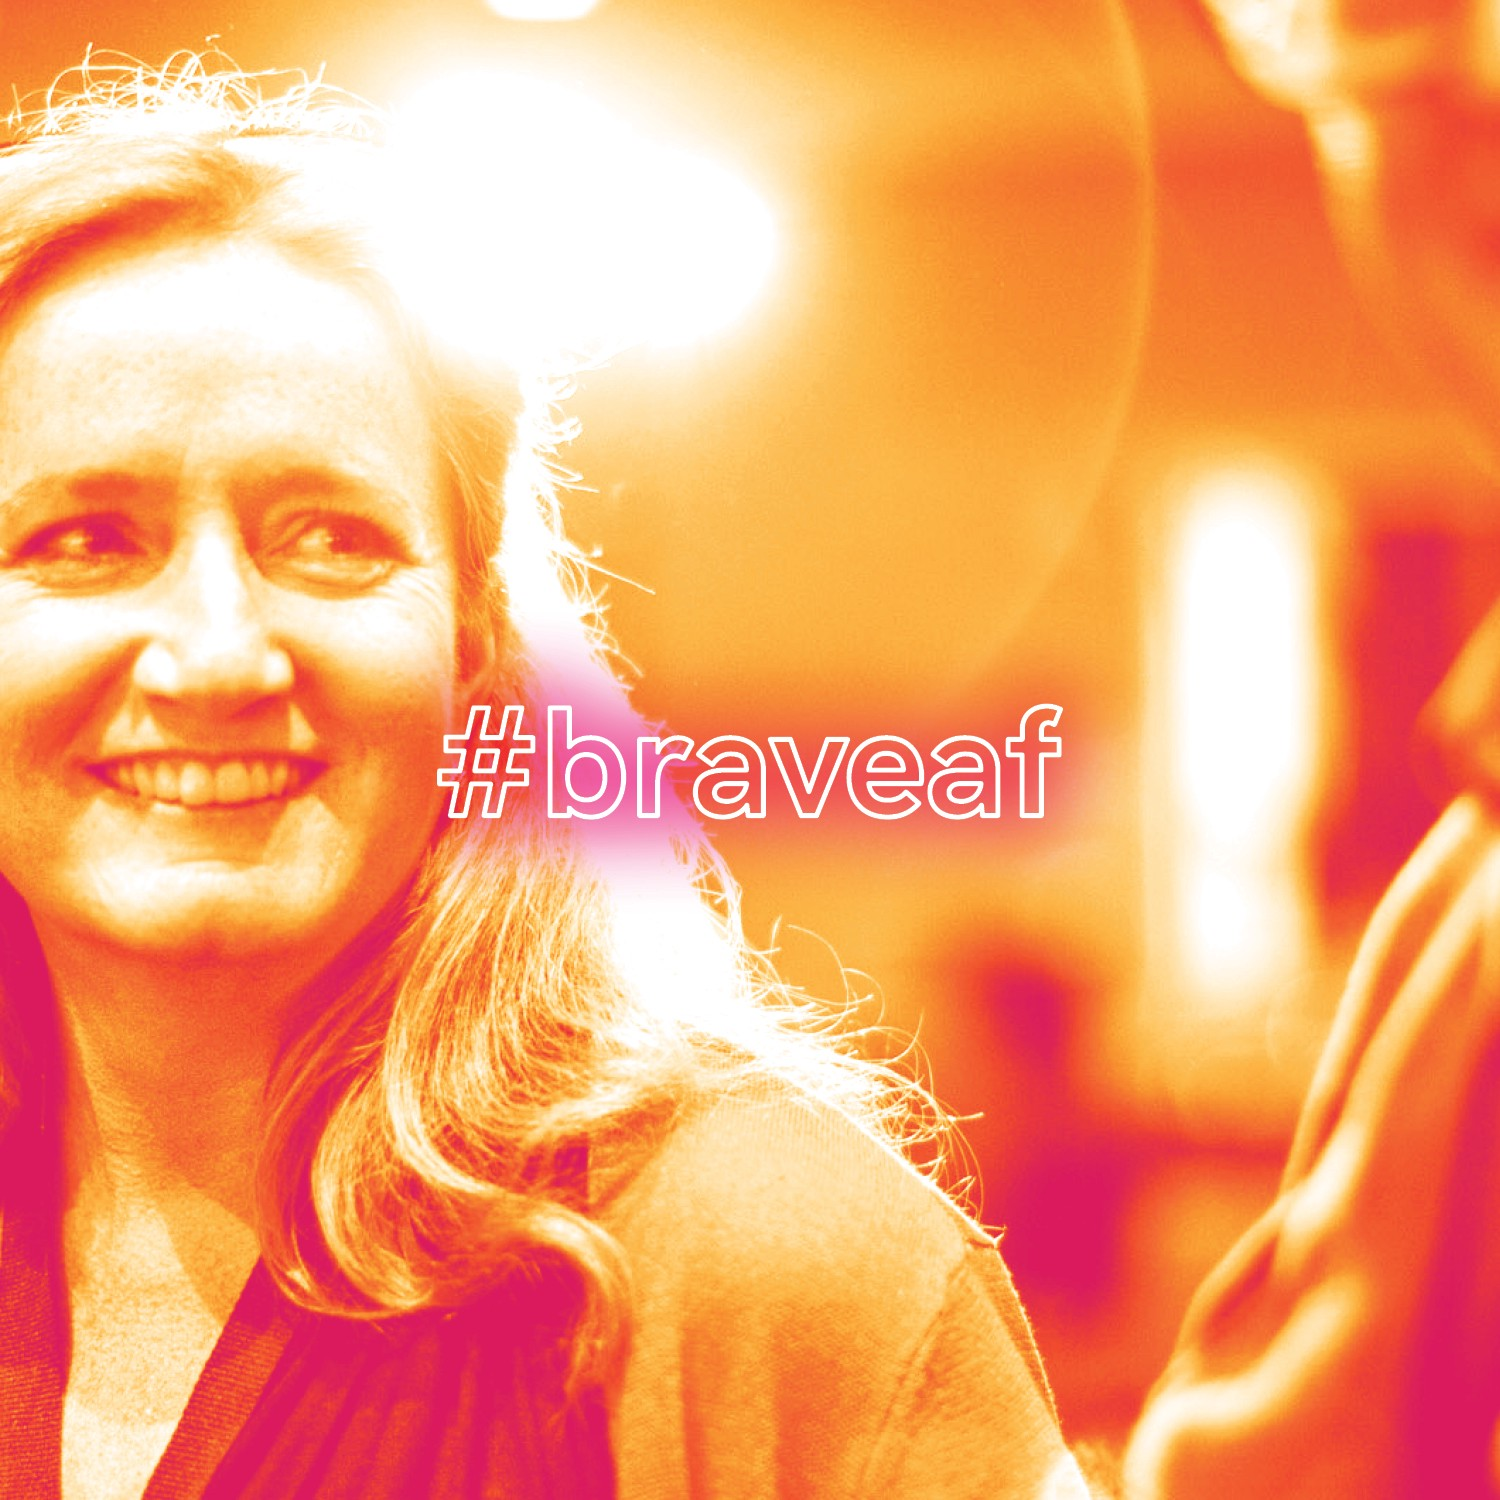 #braveaf hashtag we created to draw attention to upcoming events we are hosting at bravelylead.com